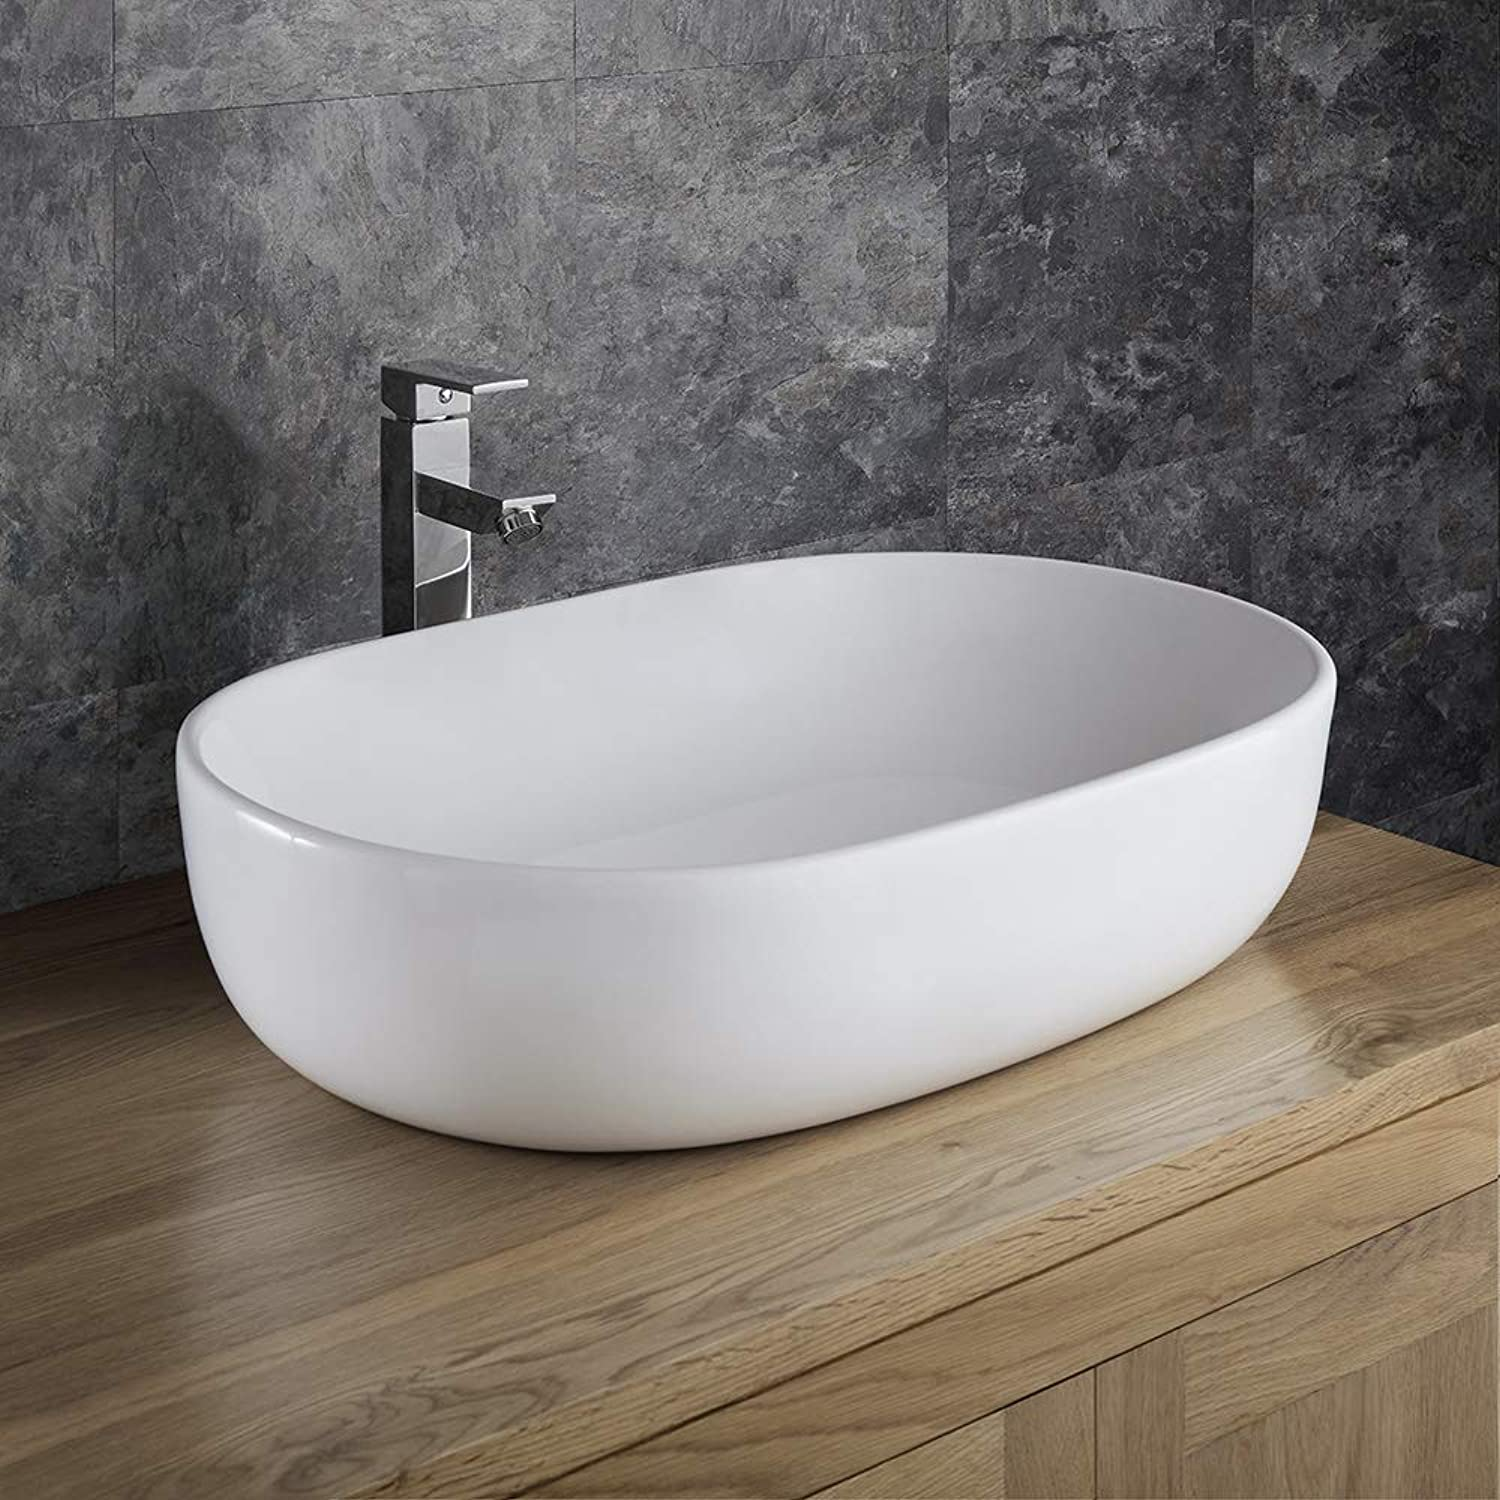 Clickbasin Counter Top Large White Oval Bathroom Sink 600mm x 425mm Alara